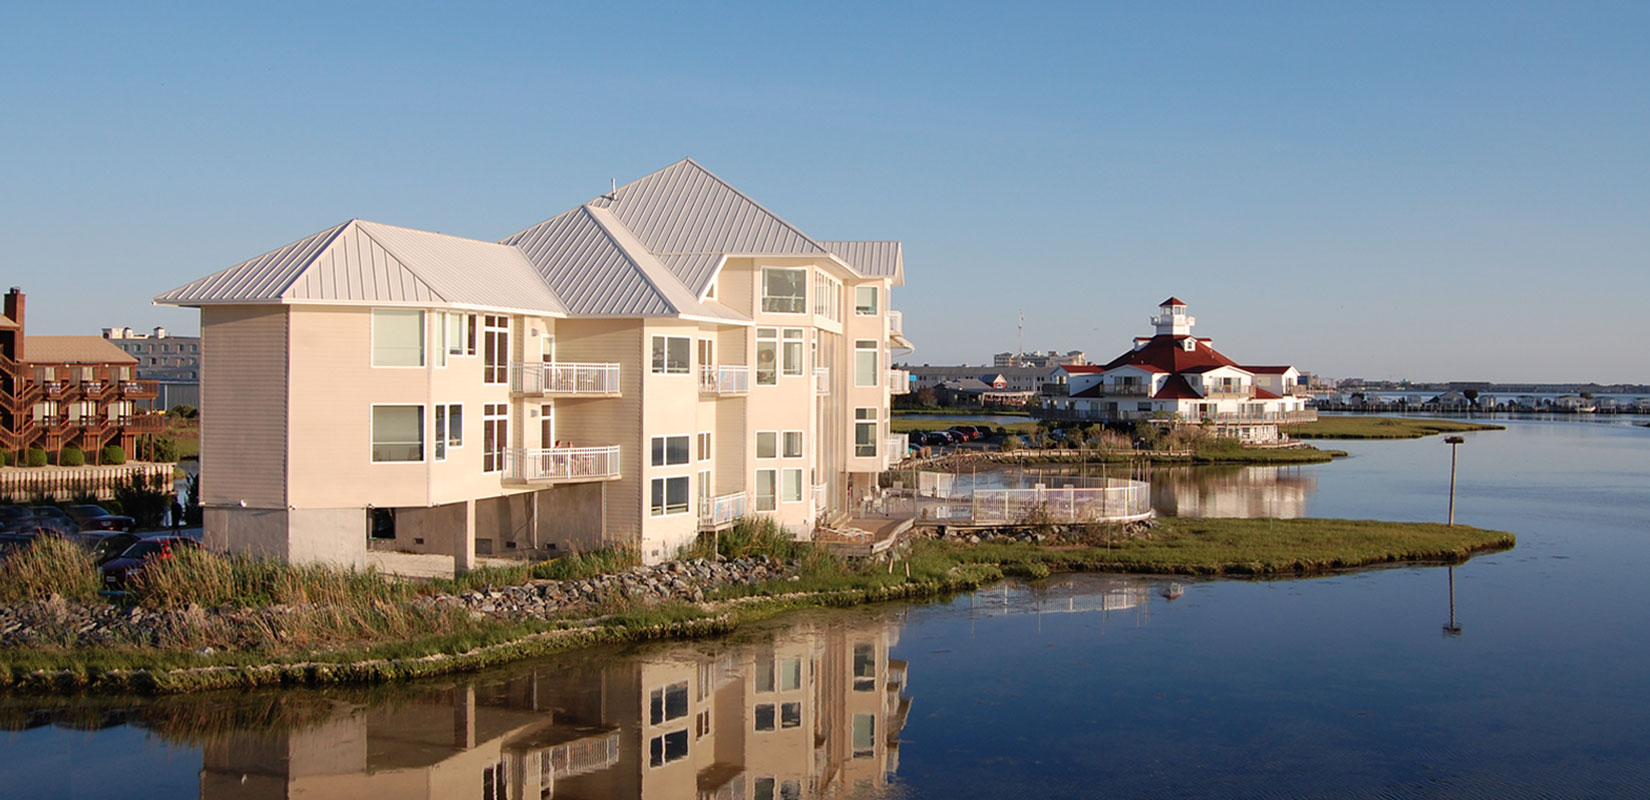 Ocean City Hotels >> Unequaled Boutique Hotels In Ocean City Maryland The Edge